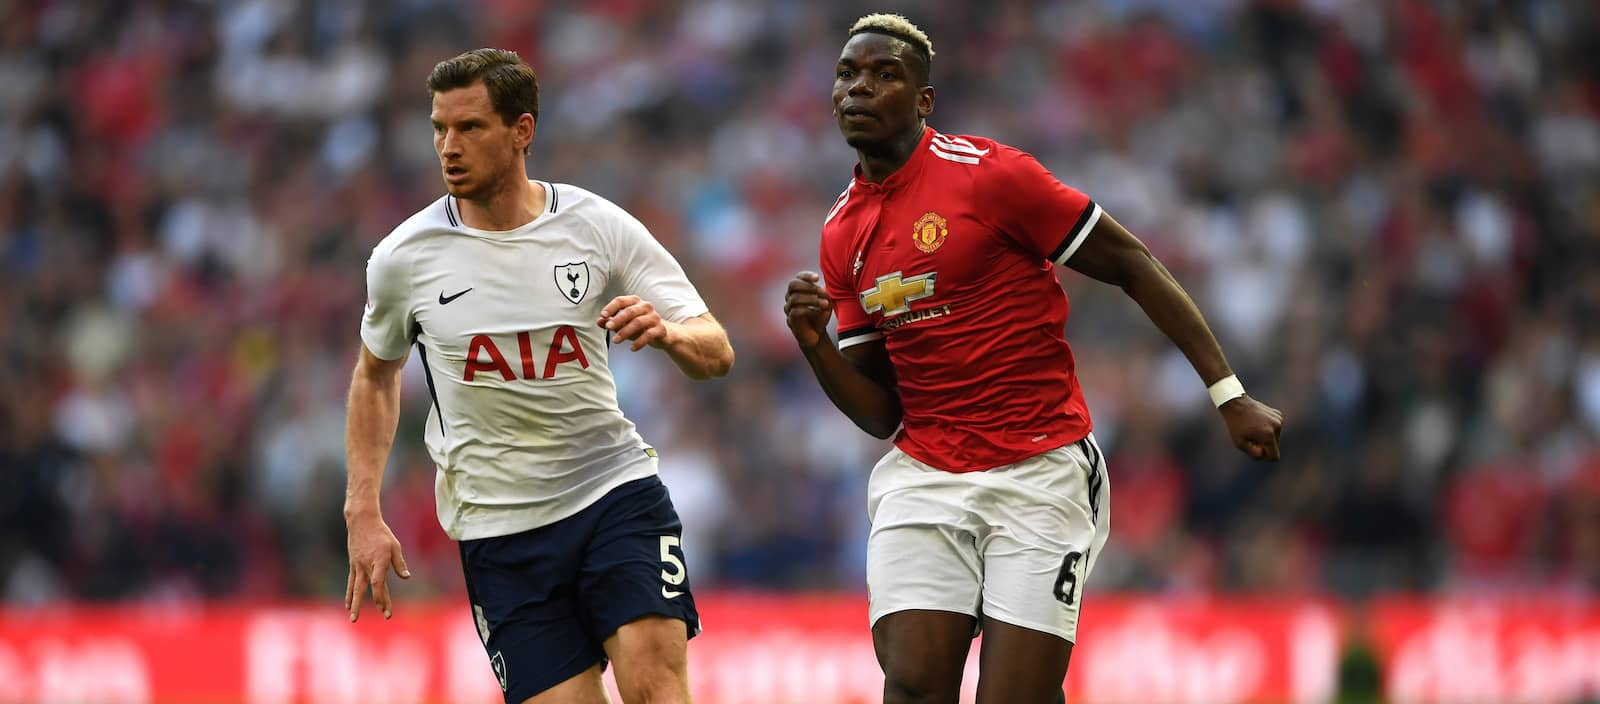 Paul Pogba: It's an honour to captain Manchester United